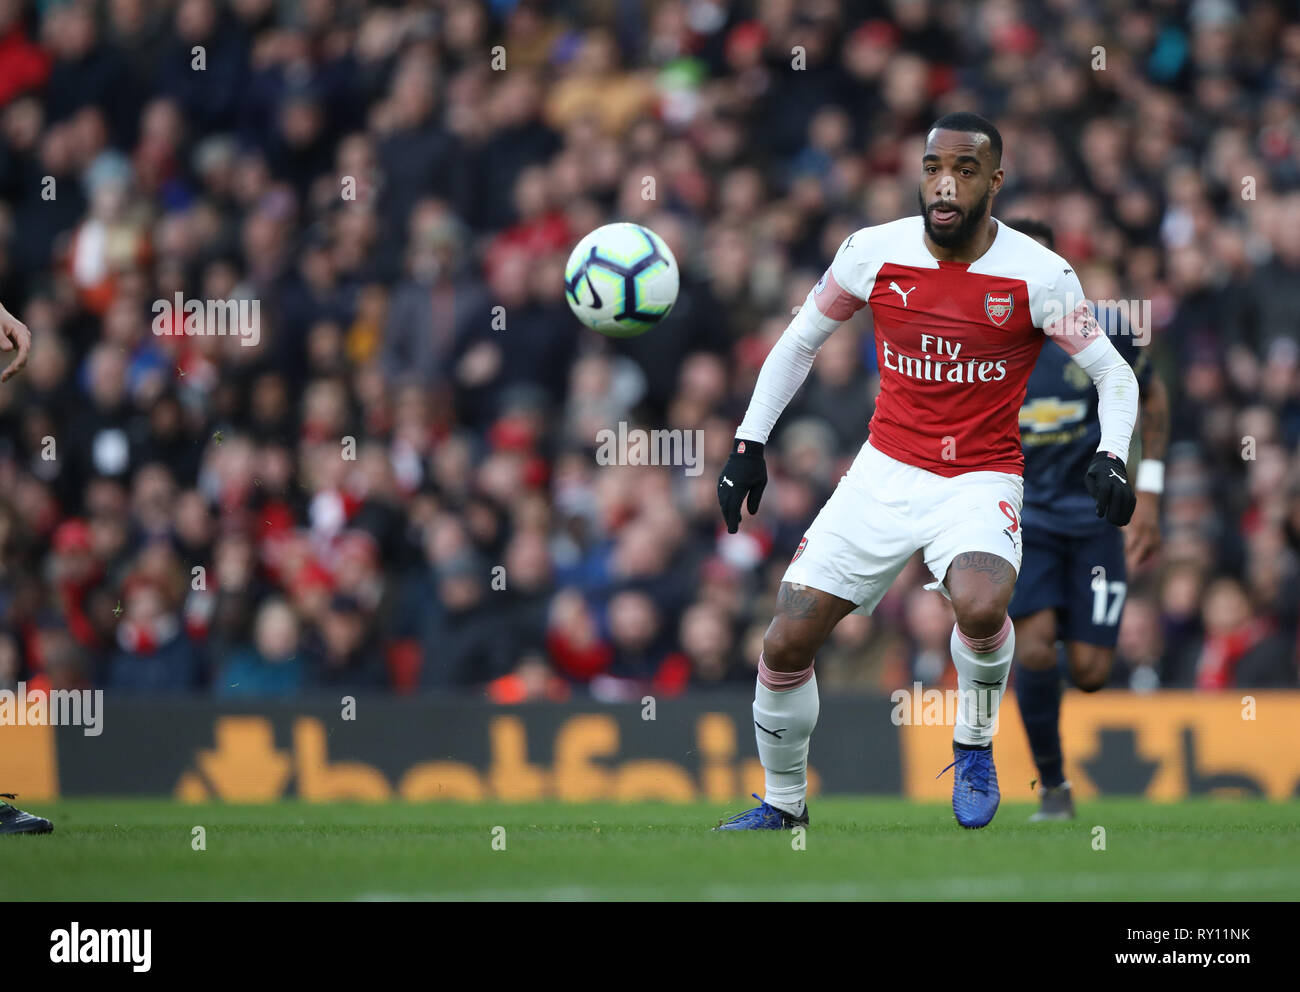 London, UK. 10th Mar, 2019. Alexandre Lacazette (A) at the Arsenal v Manchester United English Premier League football match at The Emirates Stadium, London, on March 10, 2019. **Editorial use only, license required for commercial use. No use in betting, games or a single club/league/player publications** Credit: Paul Marriott/Alamy Live News - Stock Image